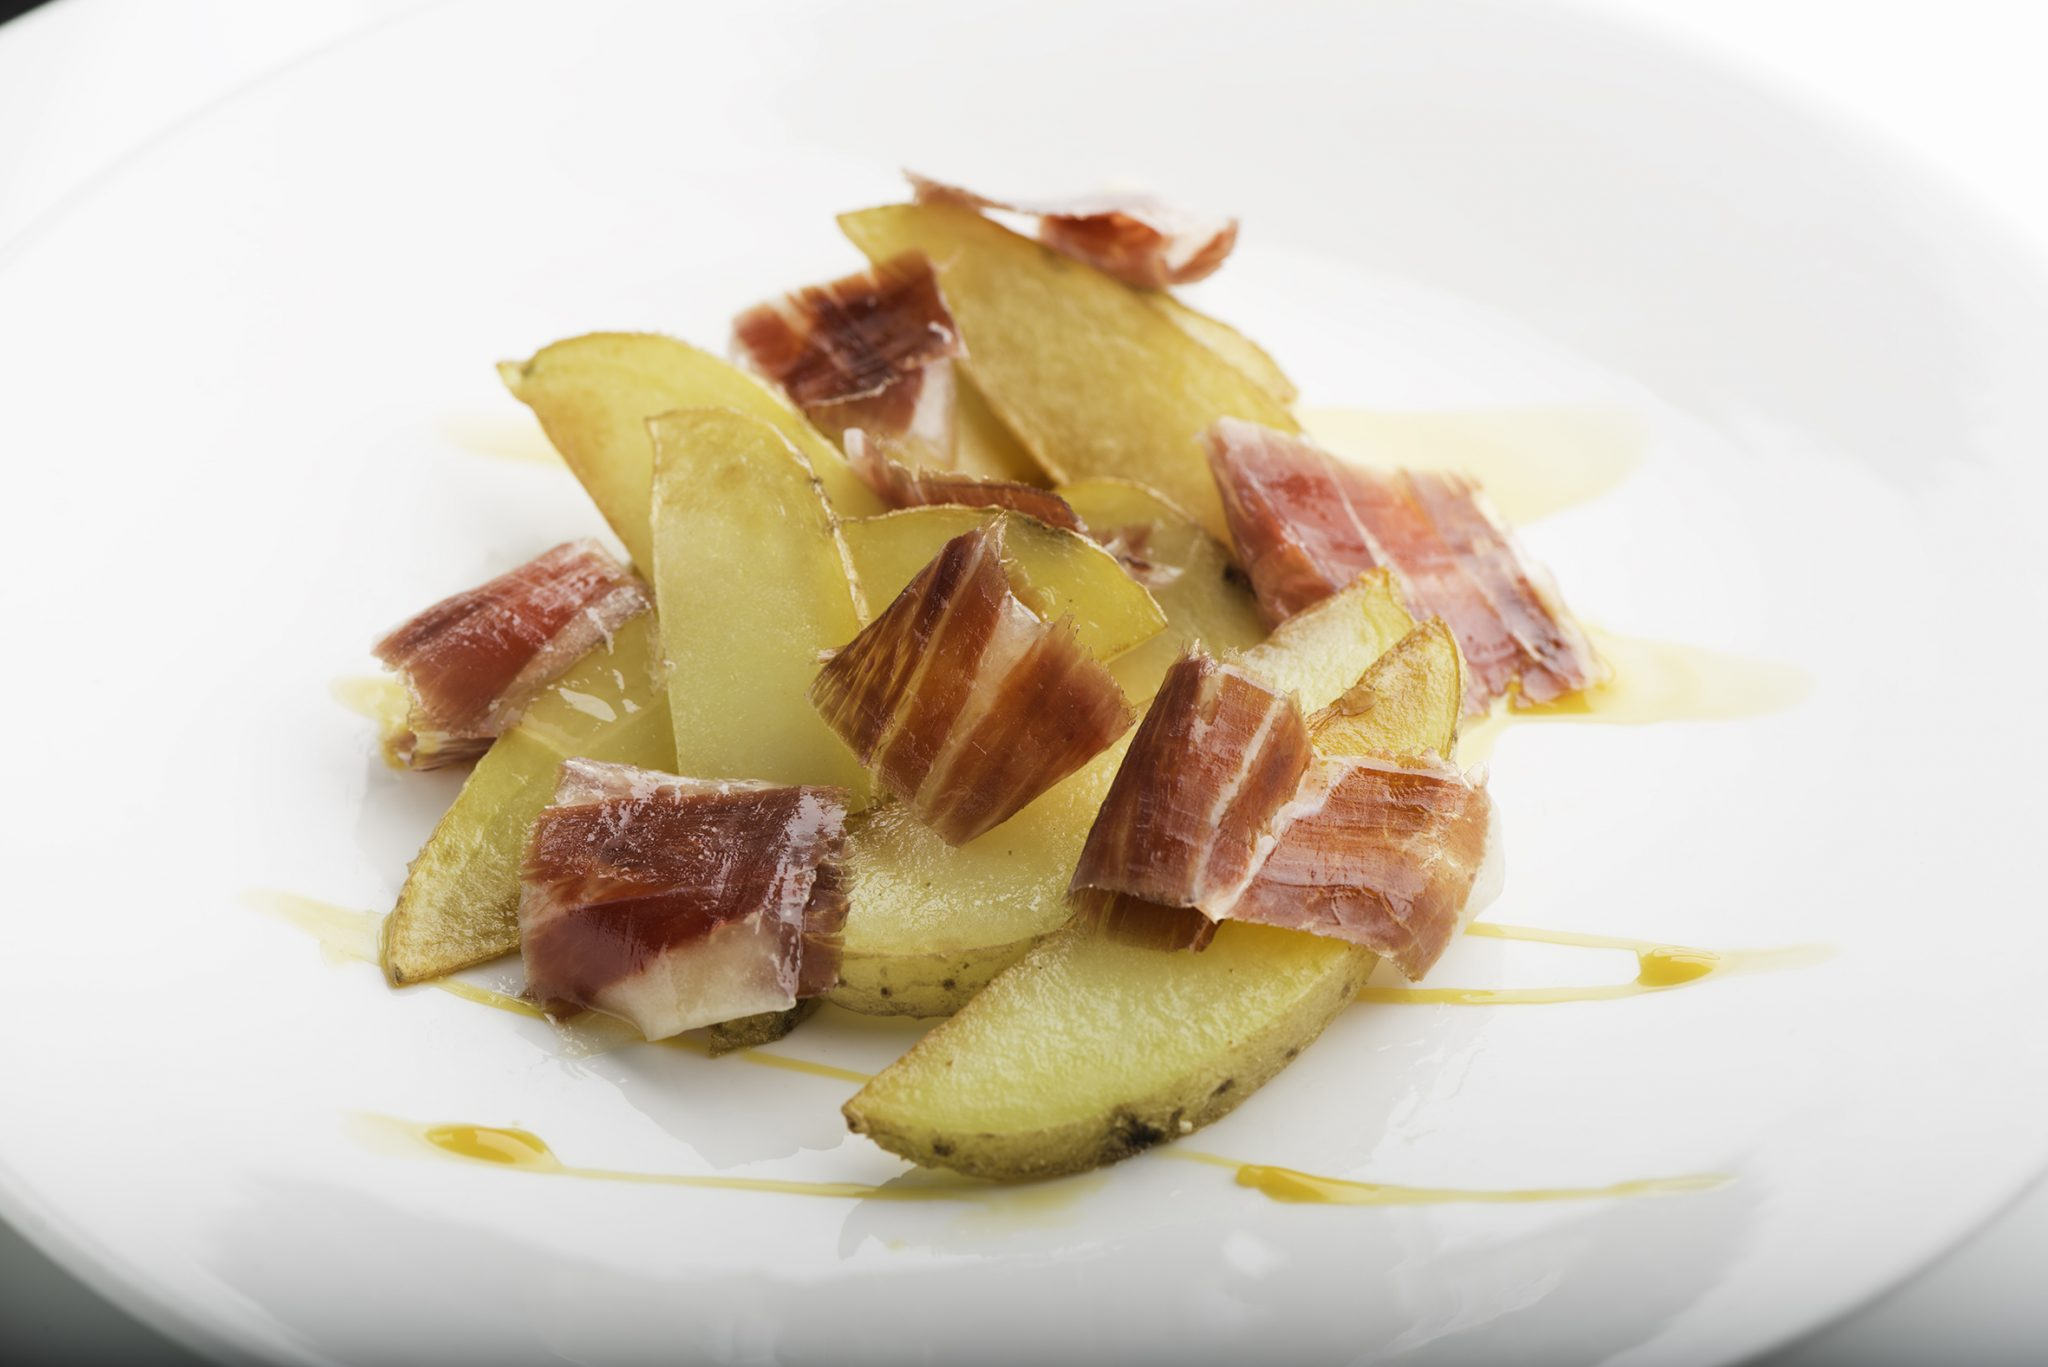 Potato wedges with egg yolks and ham